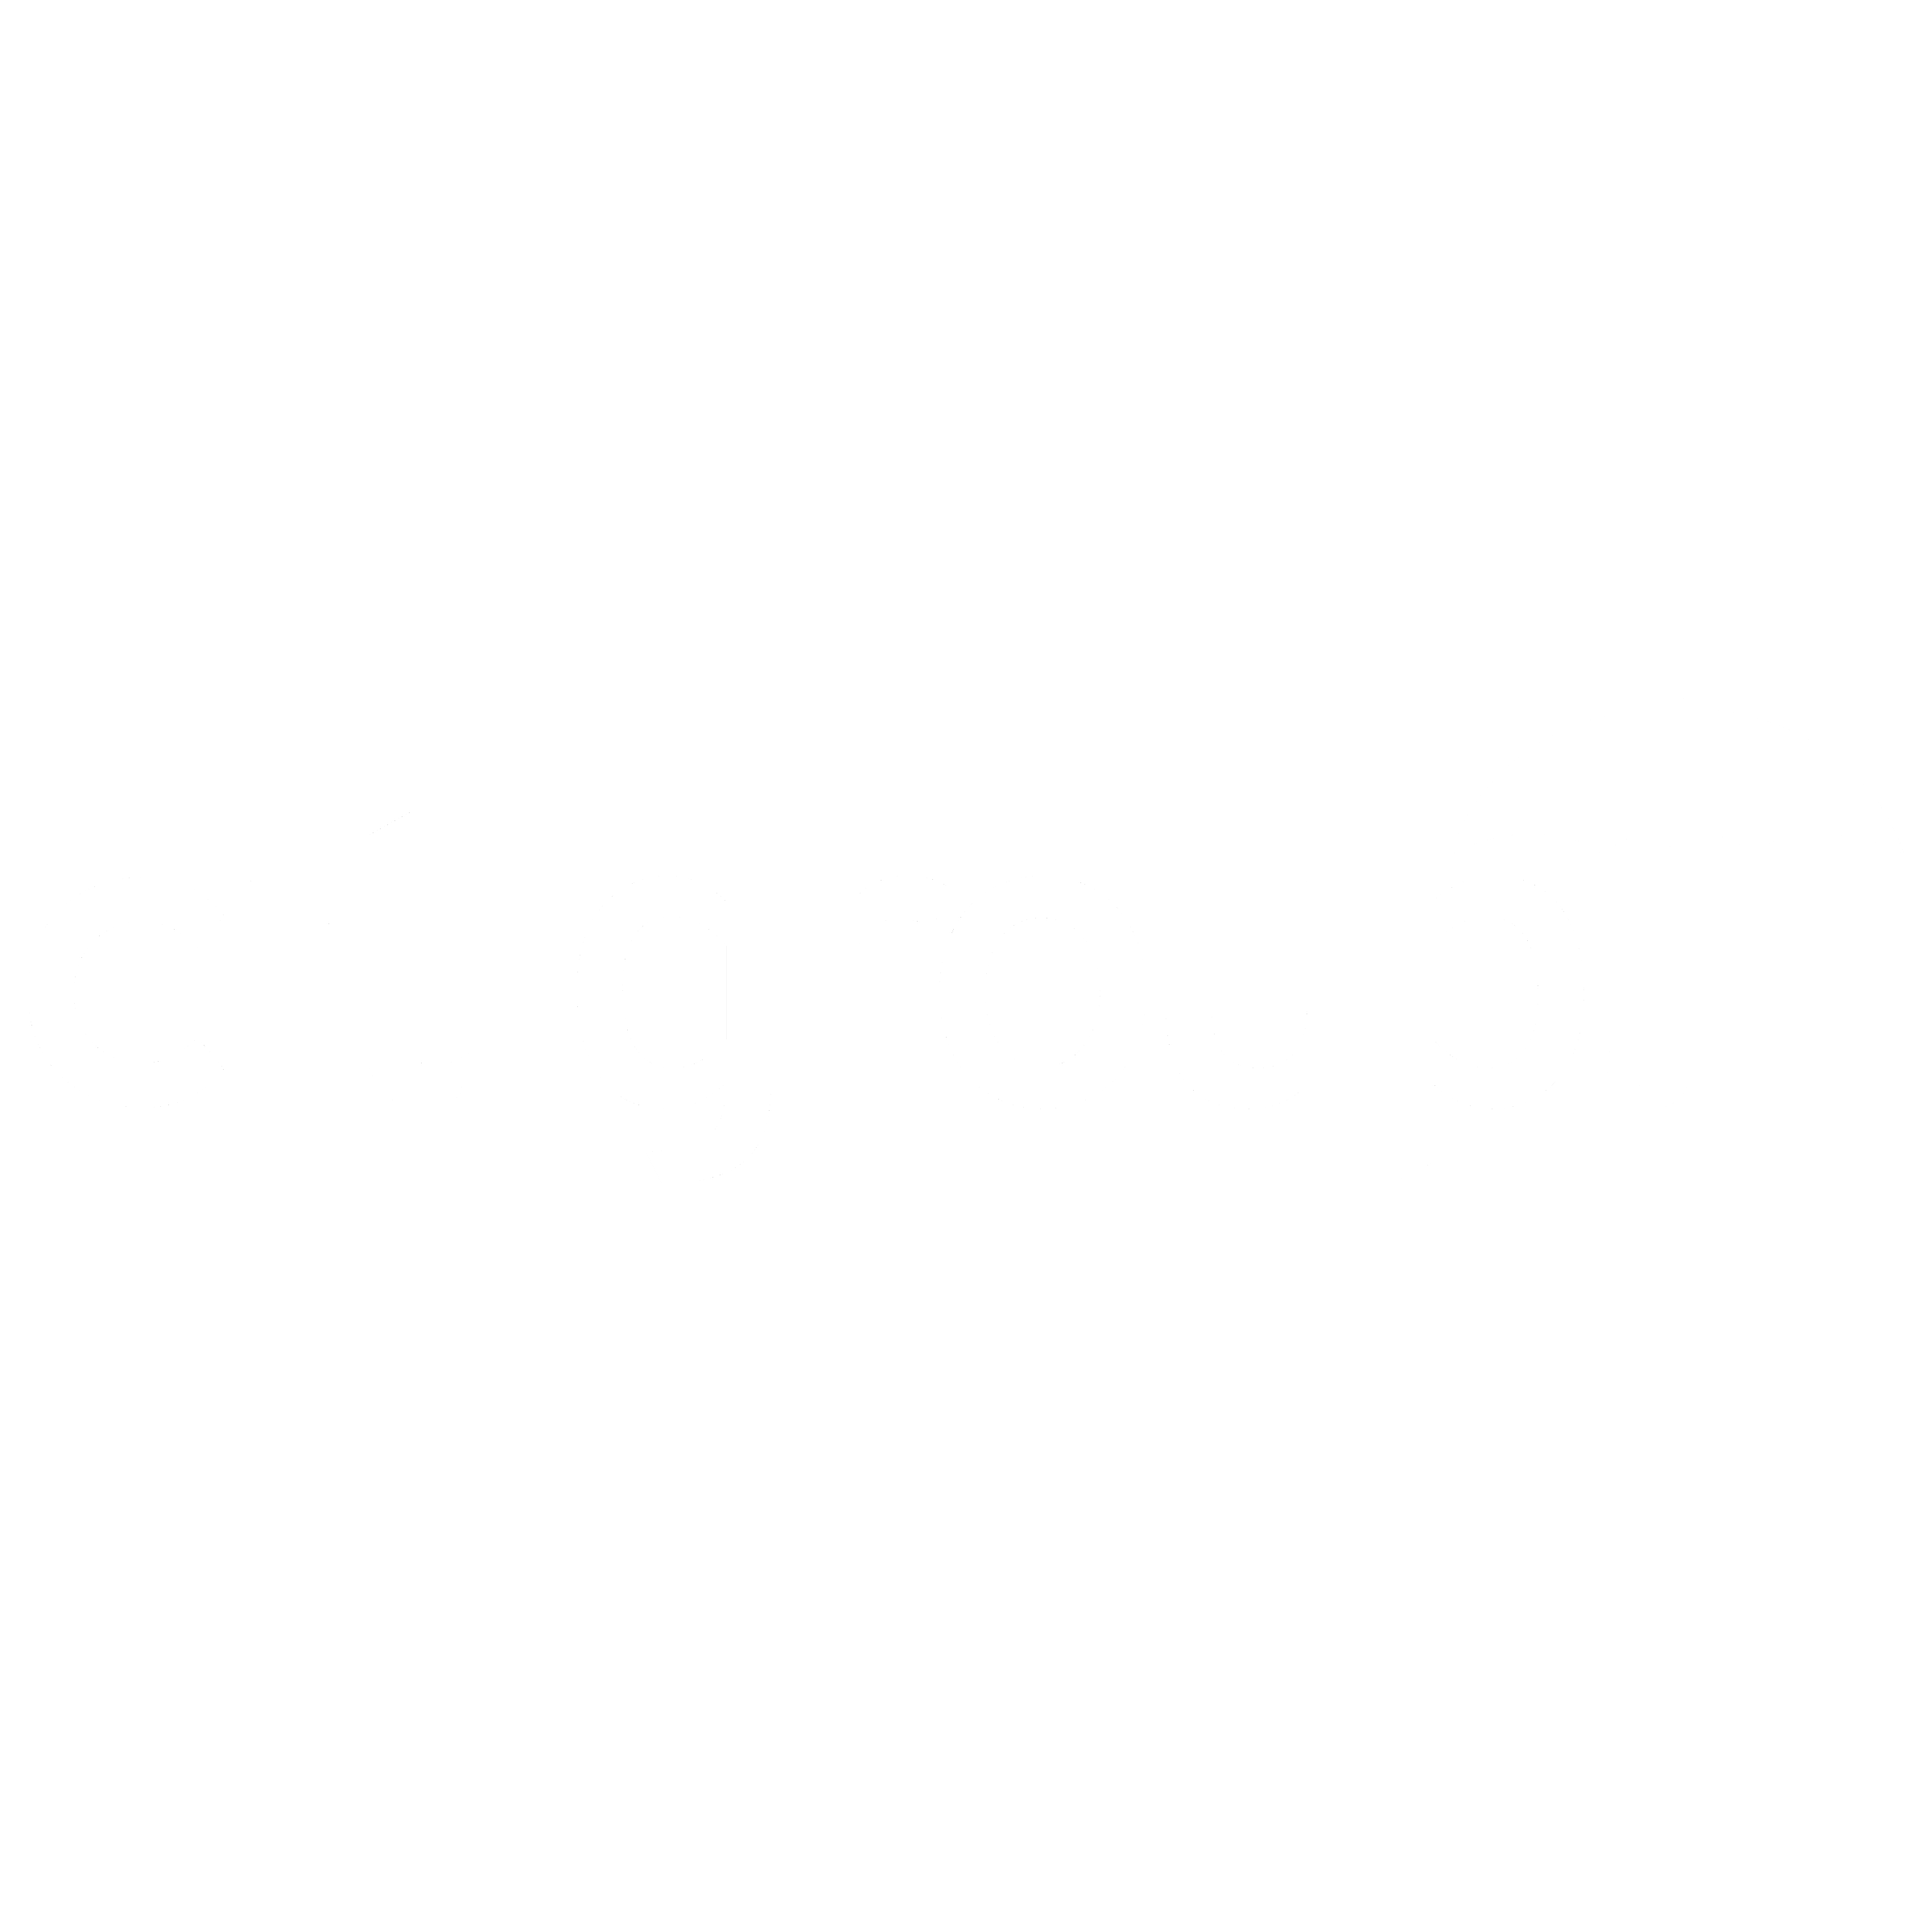 Citigroup Logo PNG Transparent & SVG Vector.